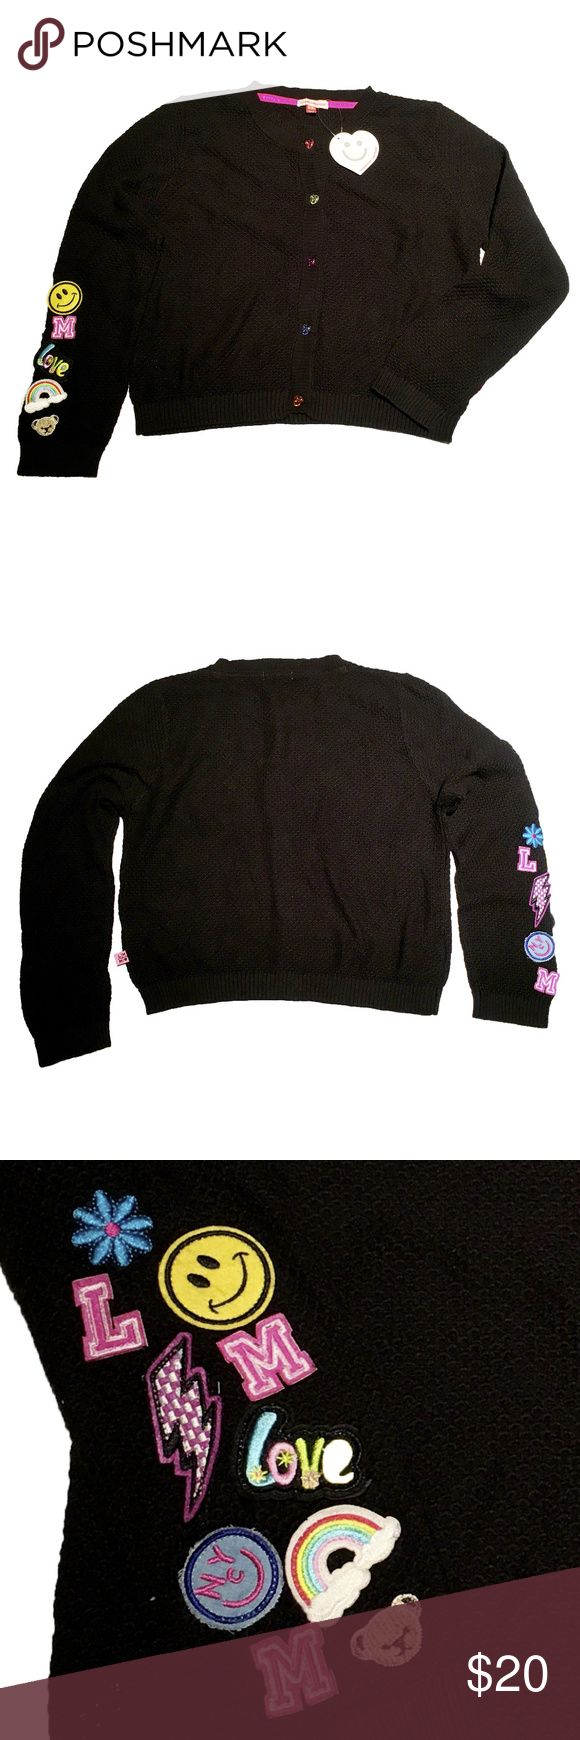 """NWT😍😘Black Honeycomb cardigan Sweater w/patches ❣️💕Great for the holiday! - Light weight, fine gauge texture sweater  - funky patches design @ one sleeve. whimsical, adorable and cheerful!  - Rainbow color heart candy button front closure.  * Fabric Content- 83/19/18 cotton/Nylon/viscose  * Measurement- Size runs big, generous fit  Chest- 18""""W  Length ( High Point Shoulder)- 18""""  Set-in Sleeve (Shoulder Point)- 22"""" Little Miss Matched Jackets & Coats"""